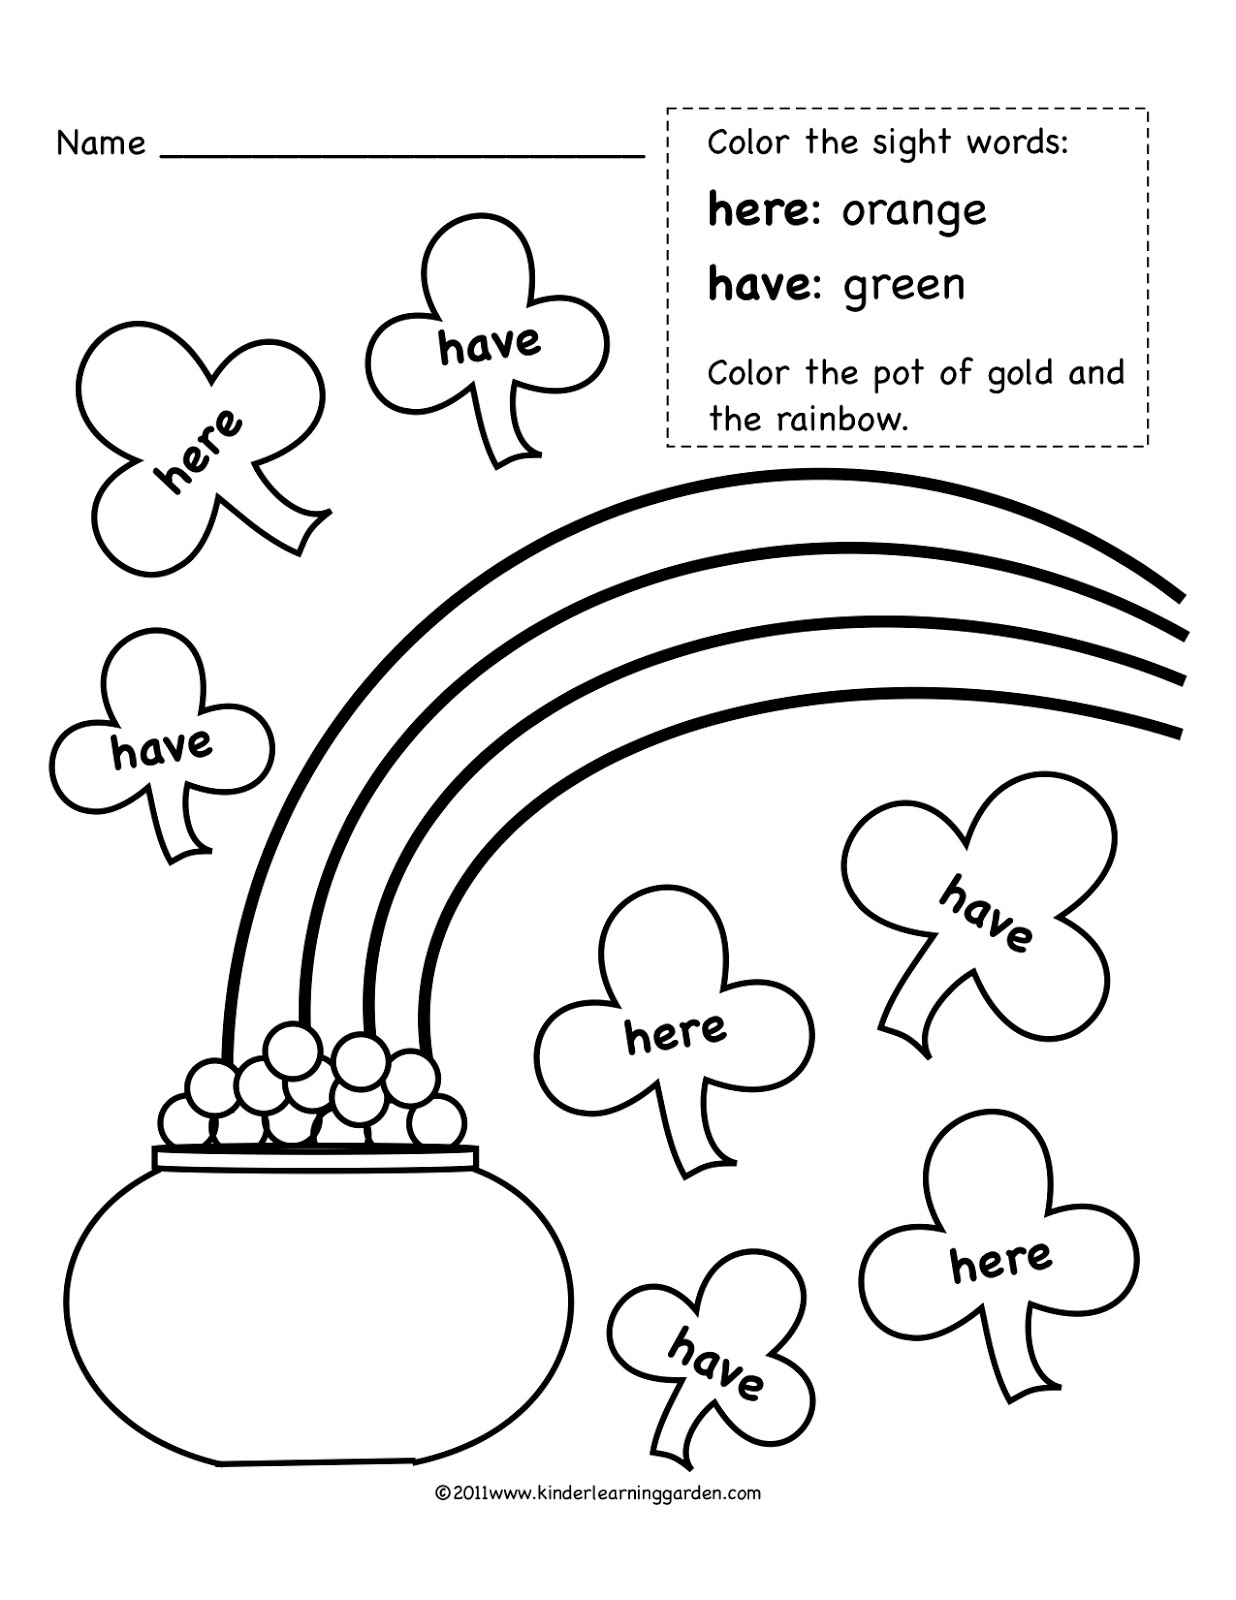 Kinder Learning Garden March Sight Words Freebie